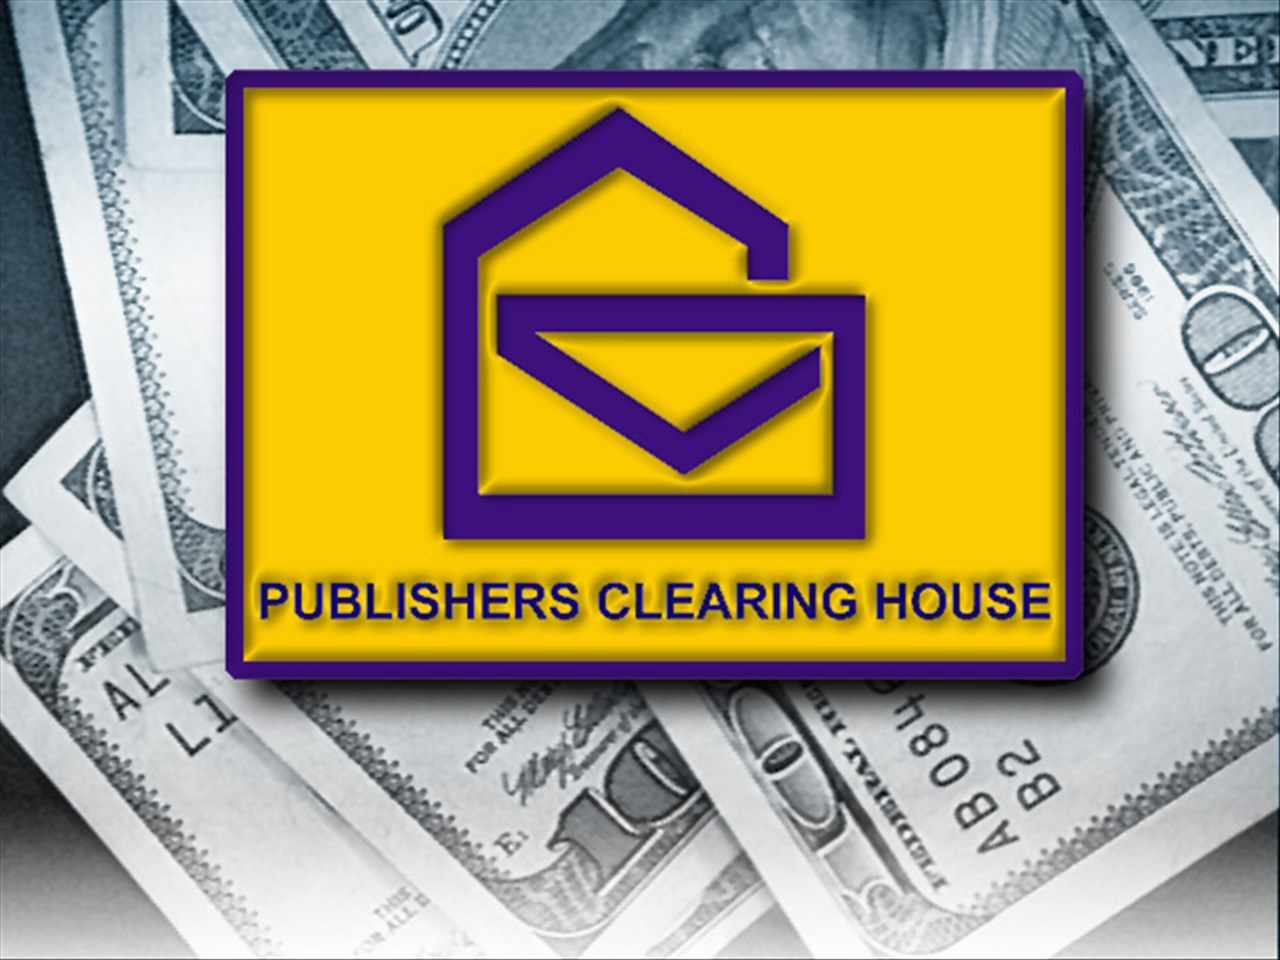 Retired couple in Springville scammed by fake Publisher's Clearing House caller